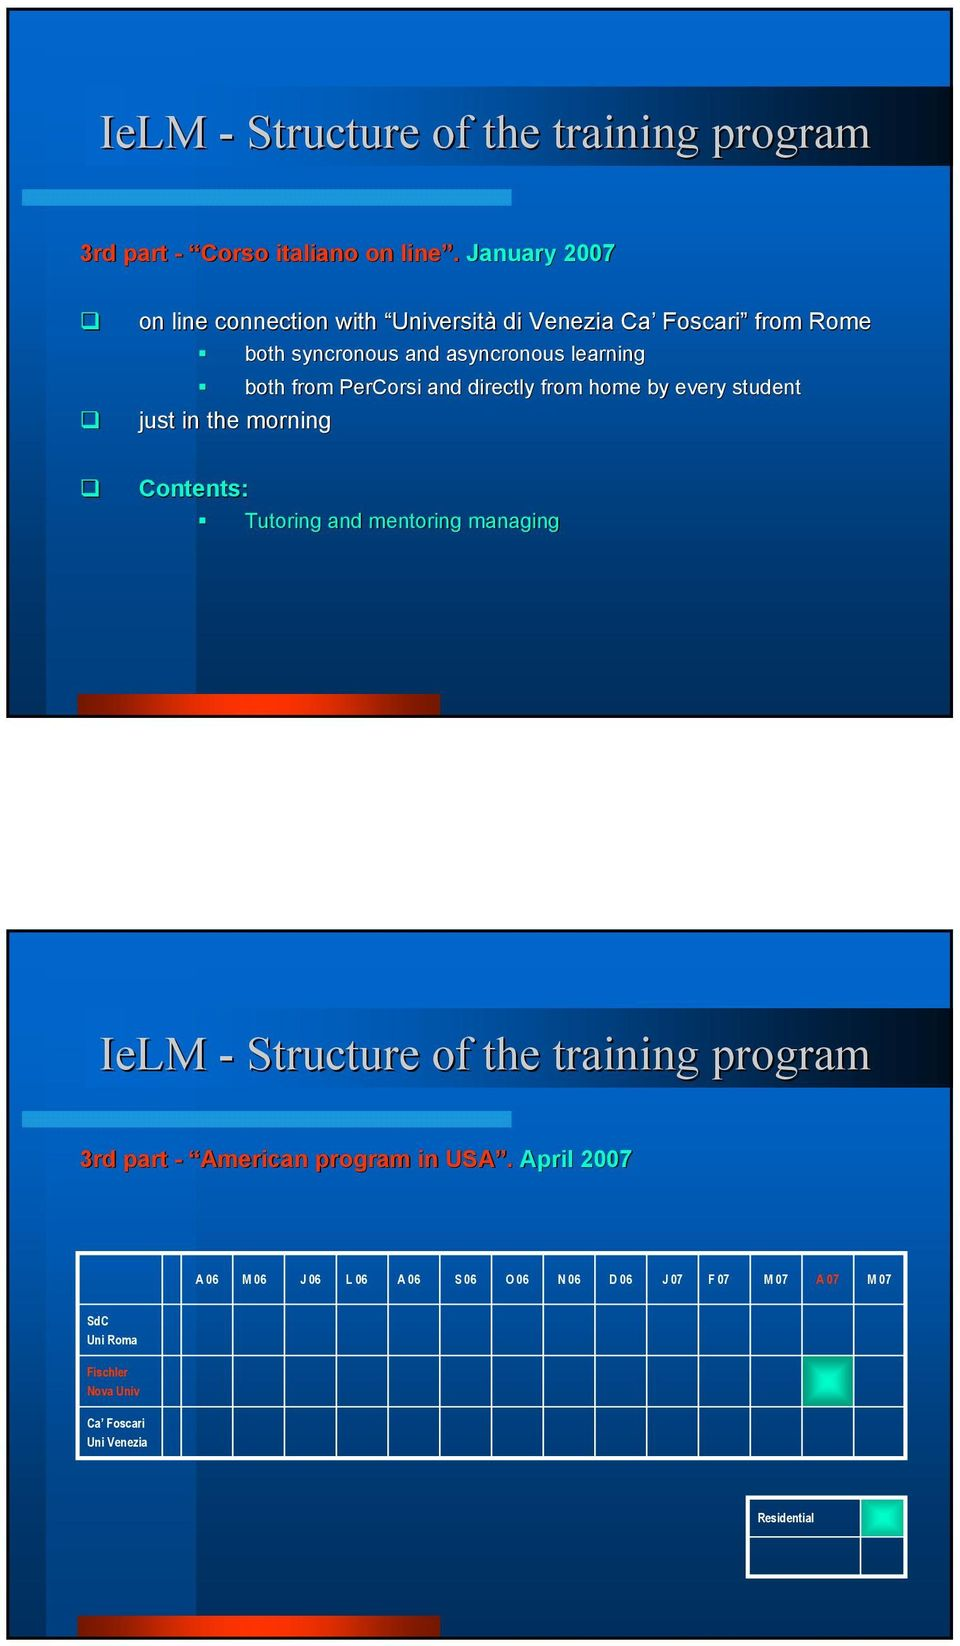 PerCorsi and directly from home by every student just in the morning Contents: Tutoring and mentoring managing IeLM - Structure of